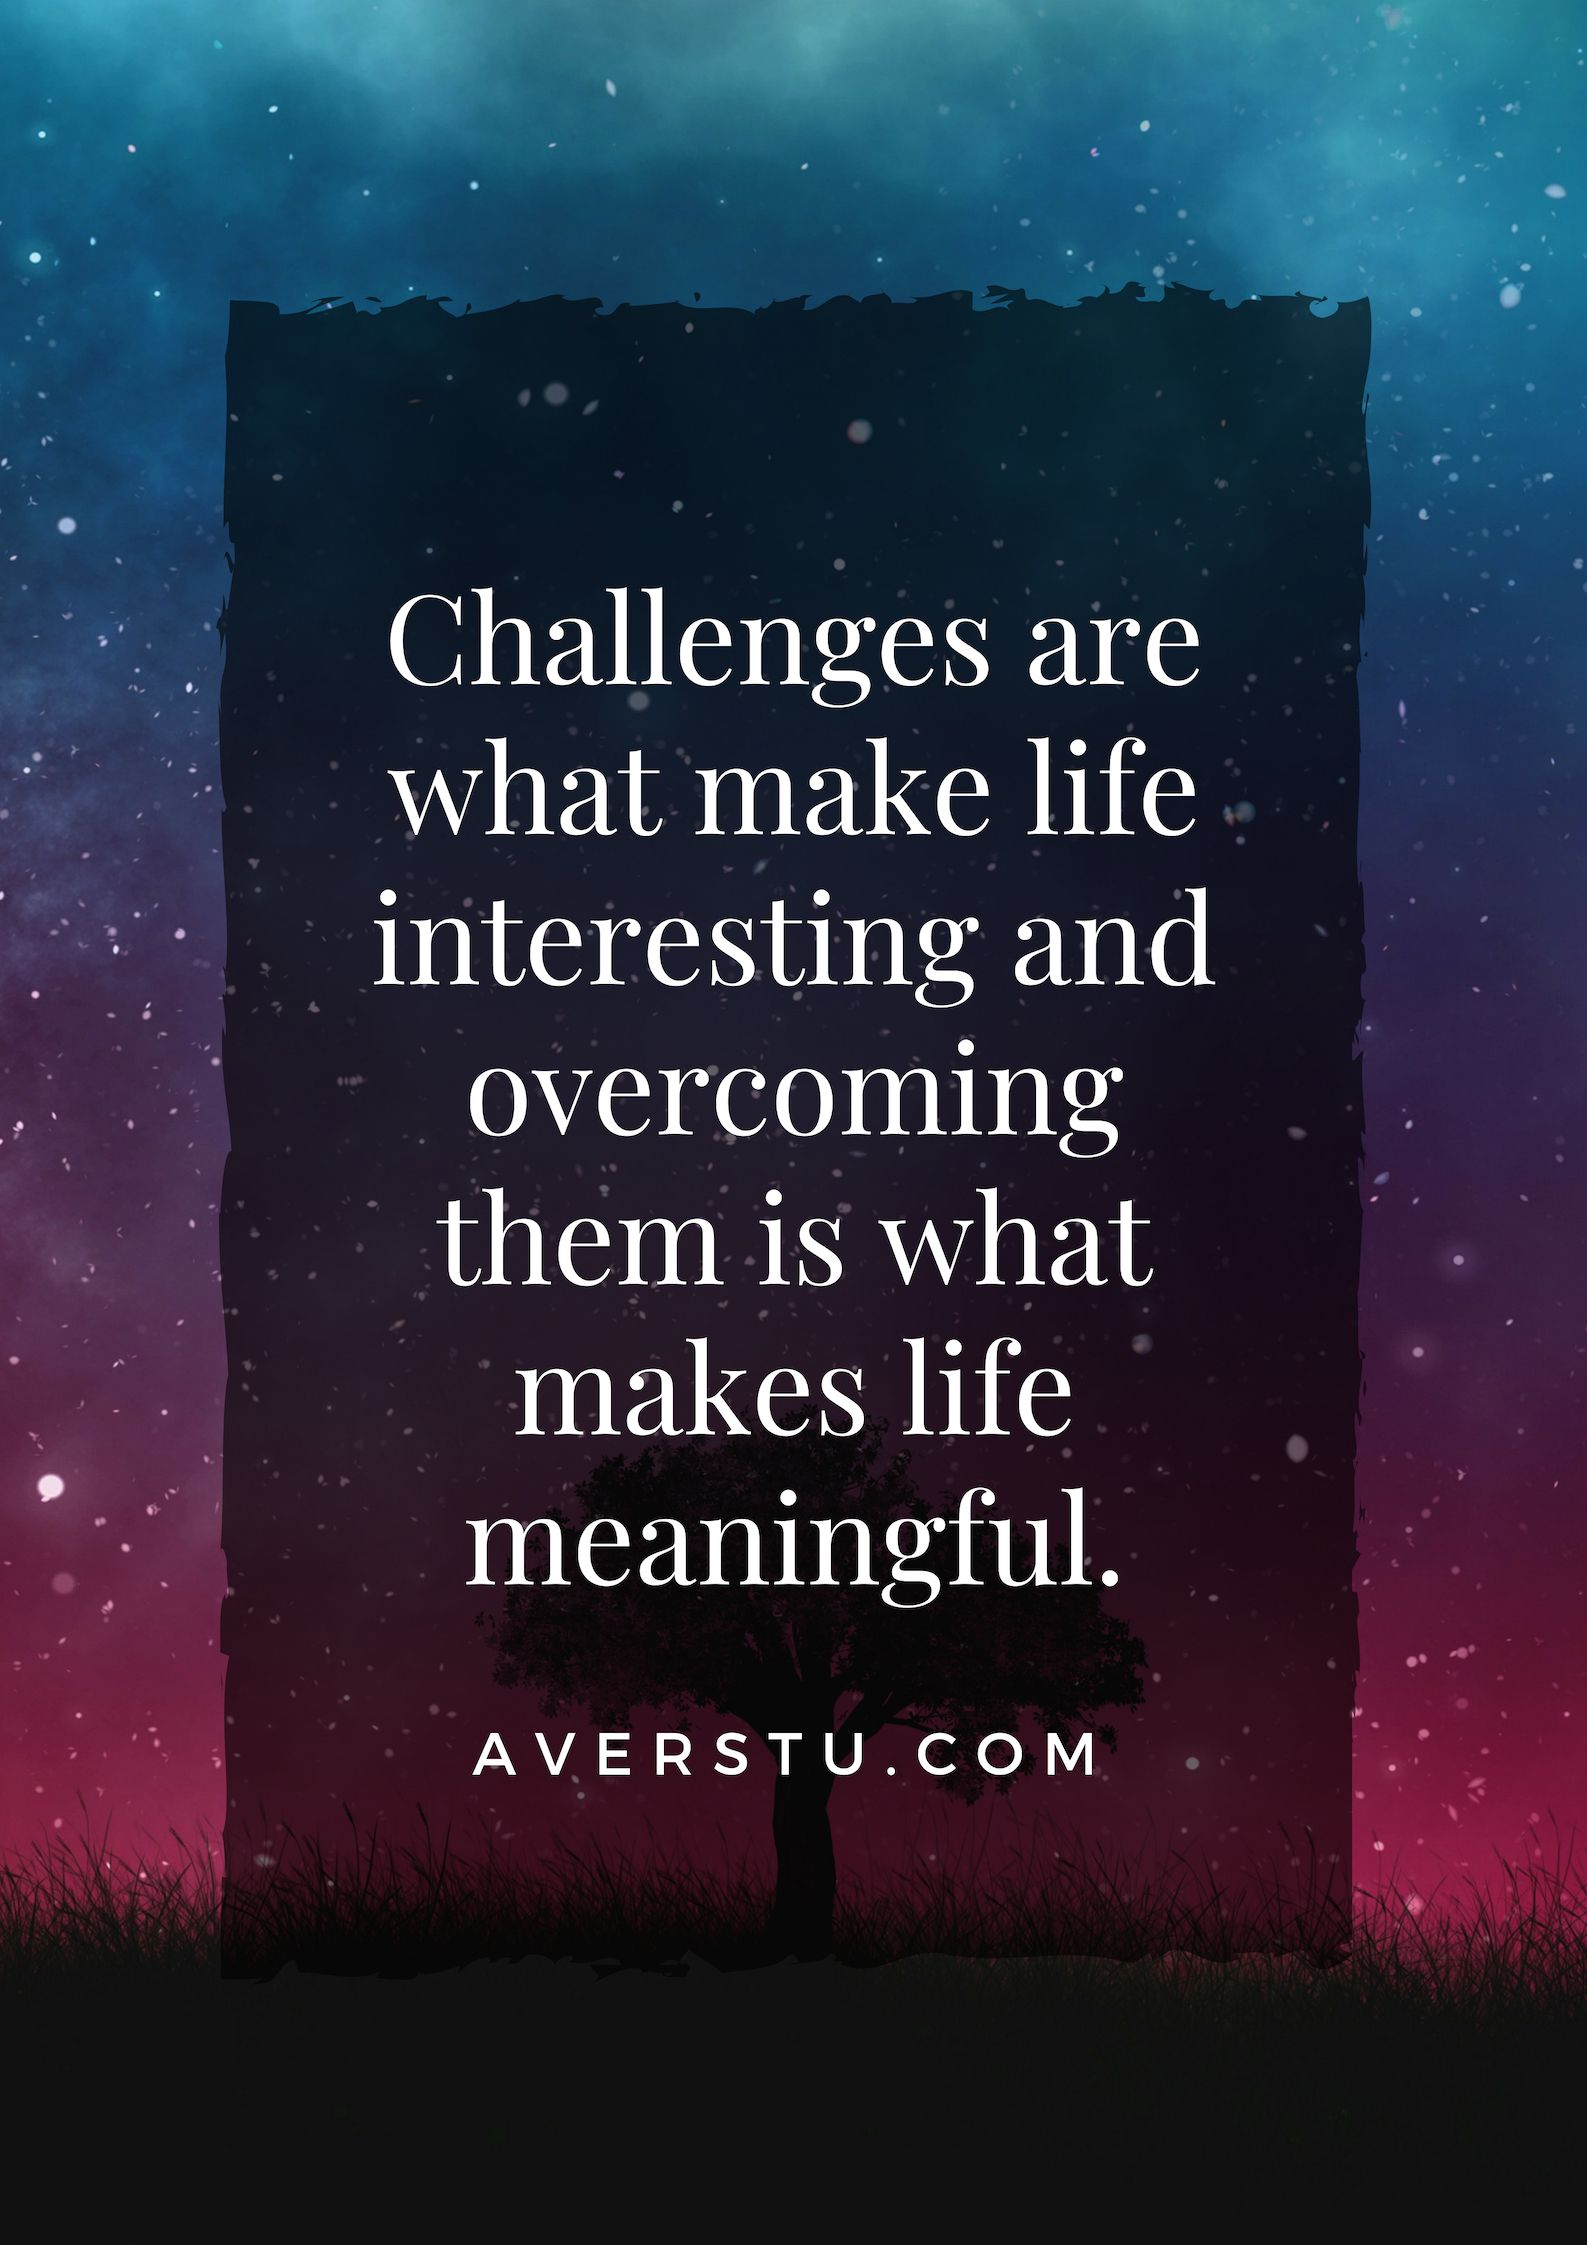 Life Obstacle Quotes : obstacle, quotes, Powerful, Quotes, Change, Life…, QUOTES, SAYINGS, Overcoming, Quotes,, Difficulties